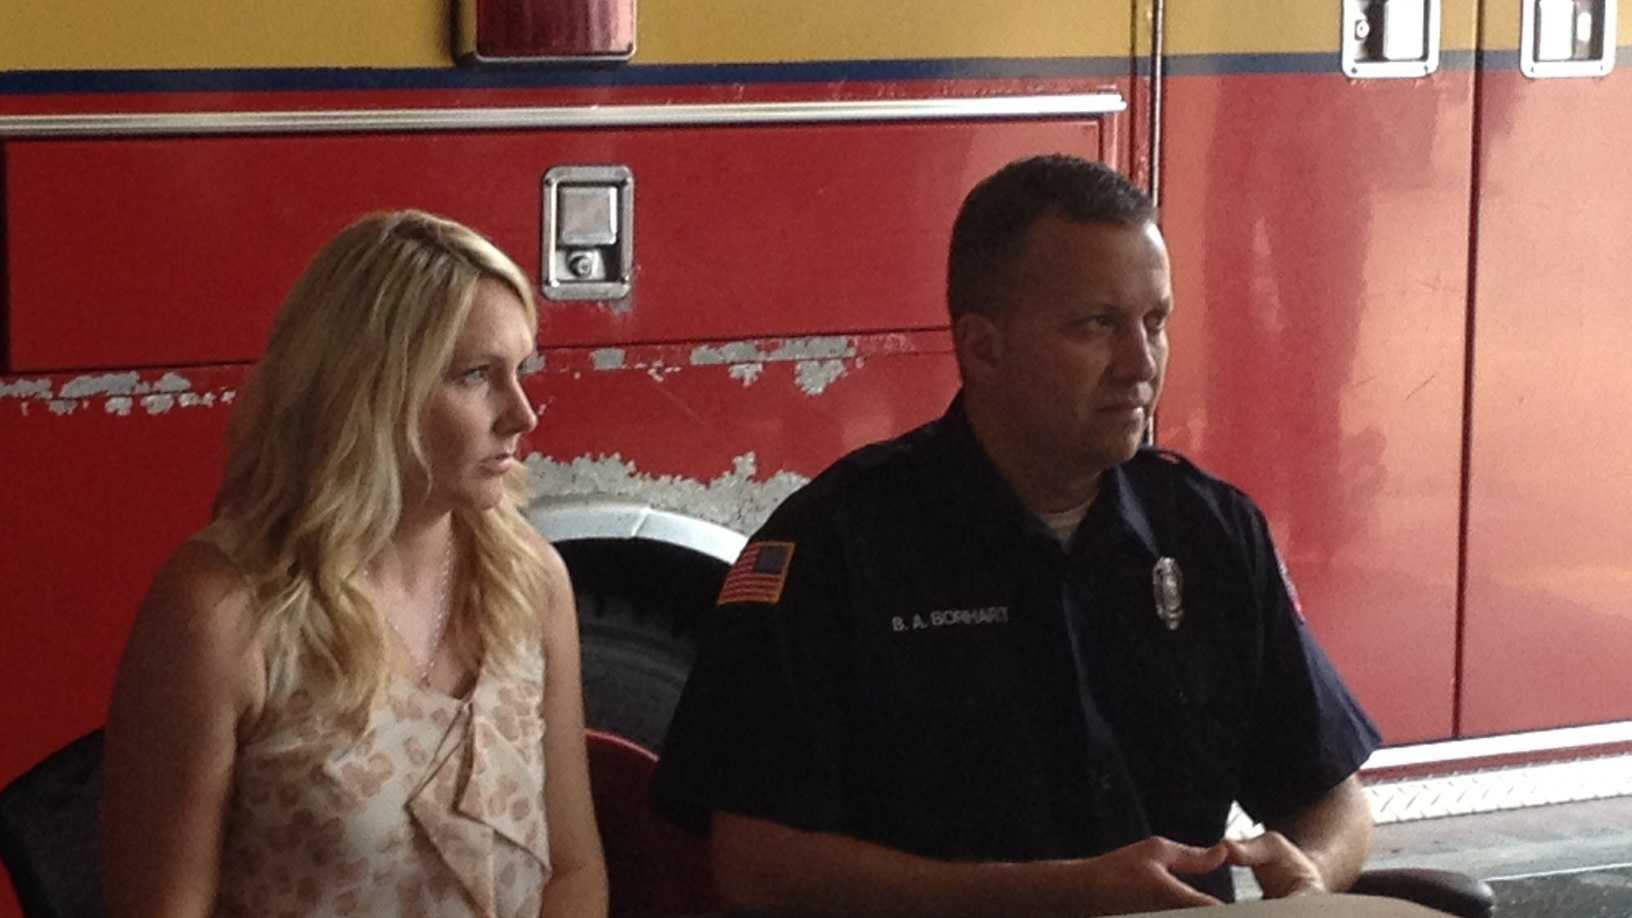 Brock Borhart and wife, firefighter.jpg